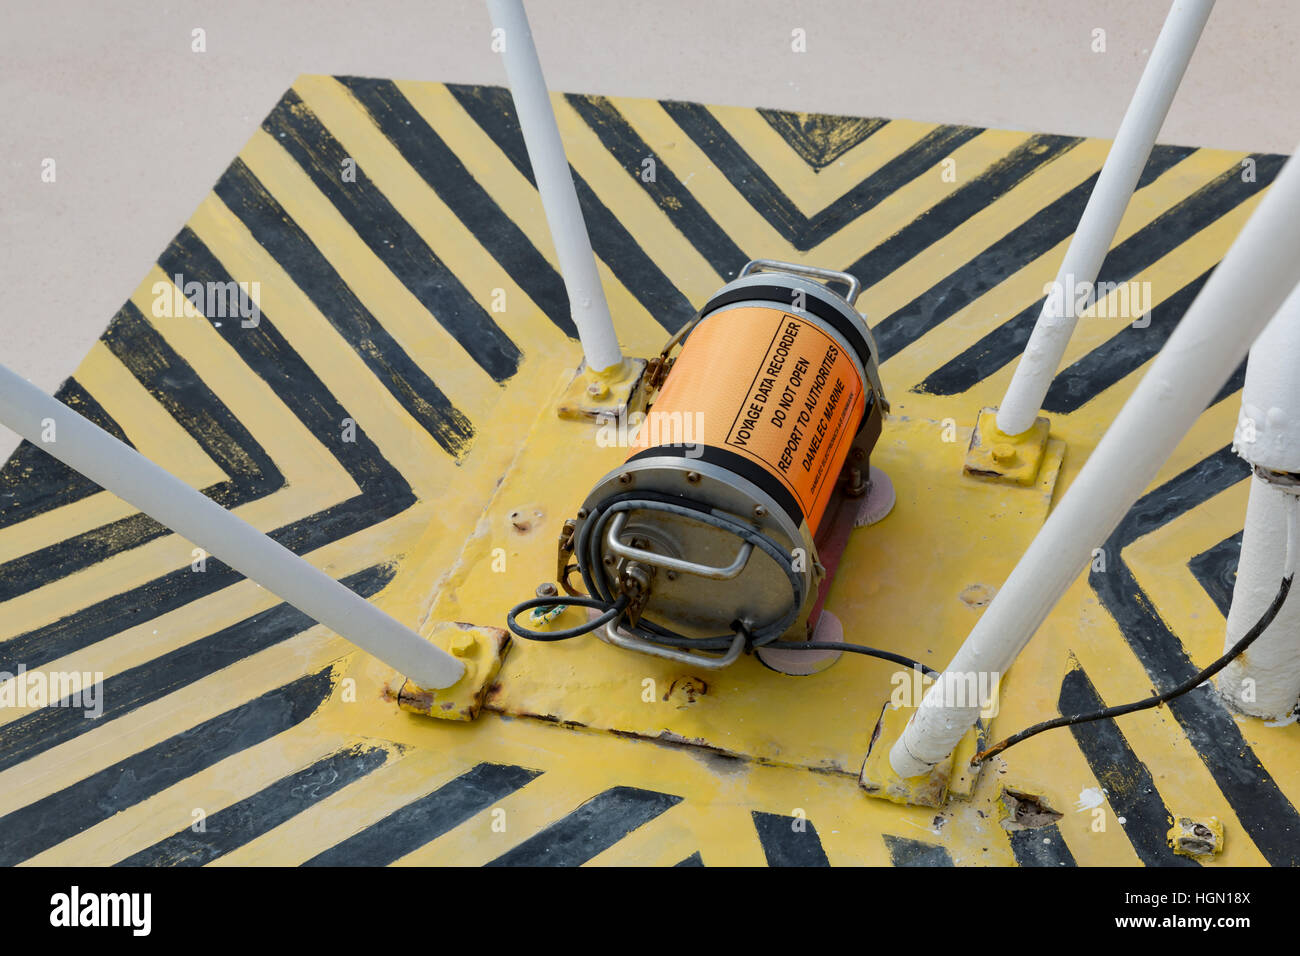 Maritime Black Box voice and data recorder mounted on ship foredeck. - Stock Image